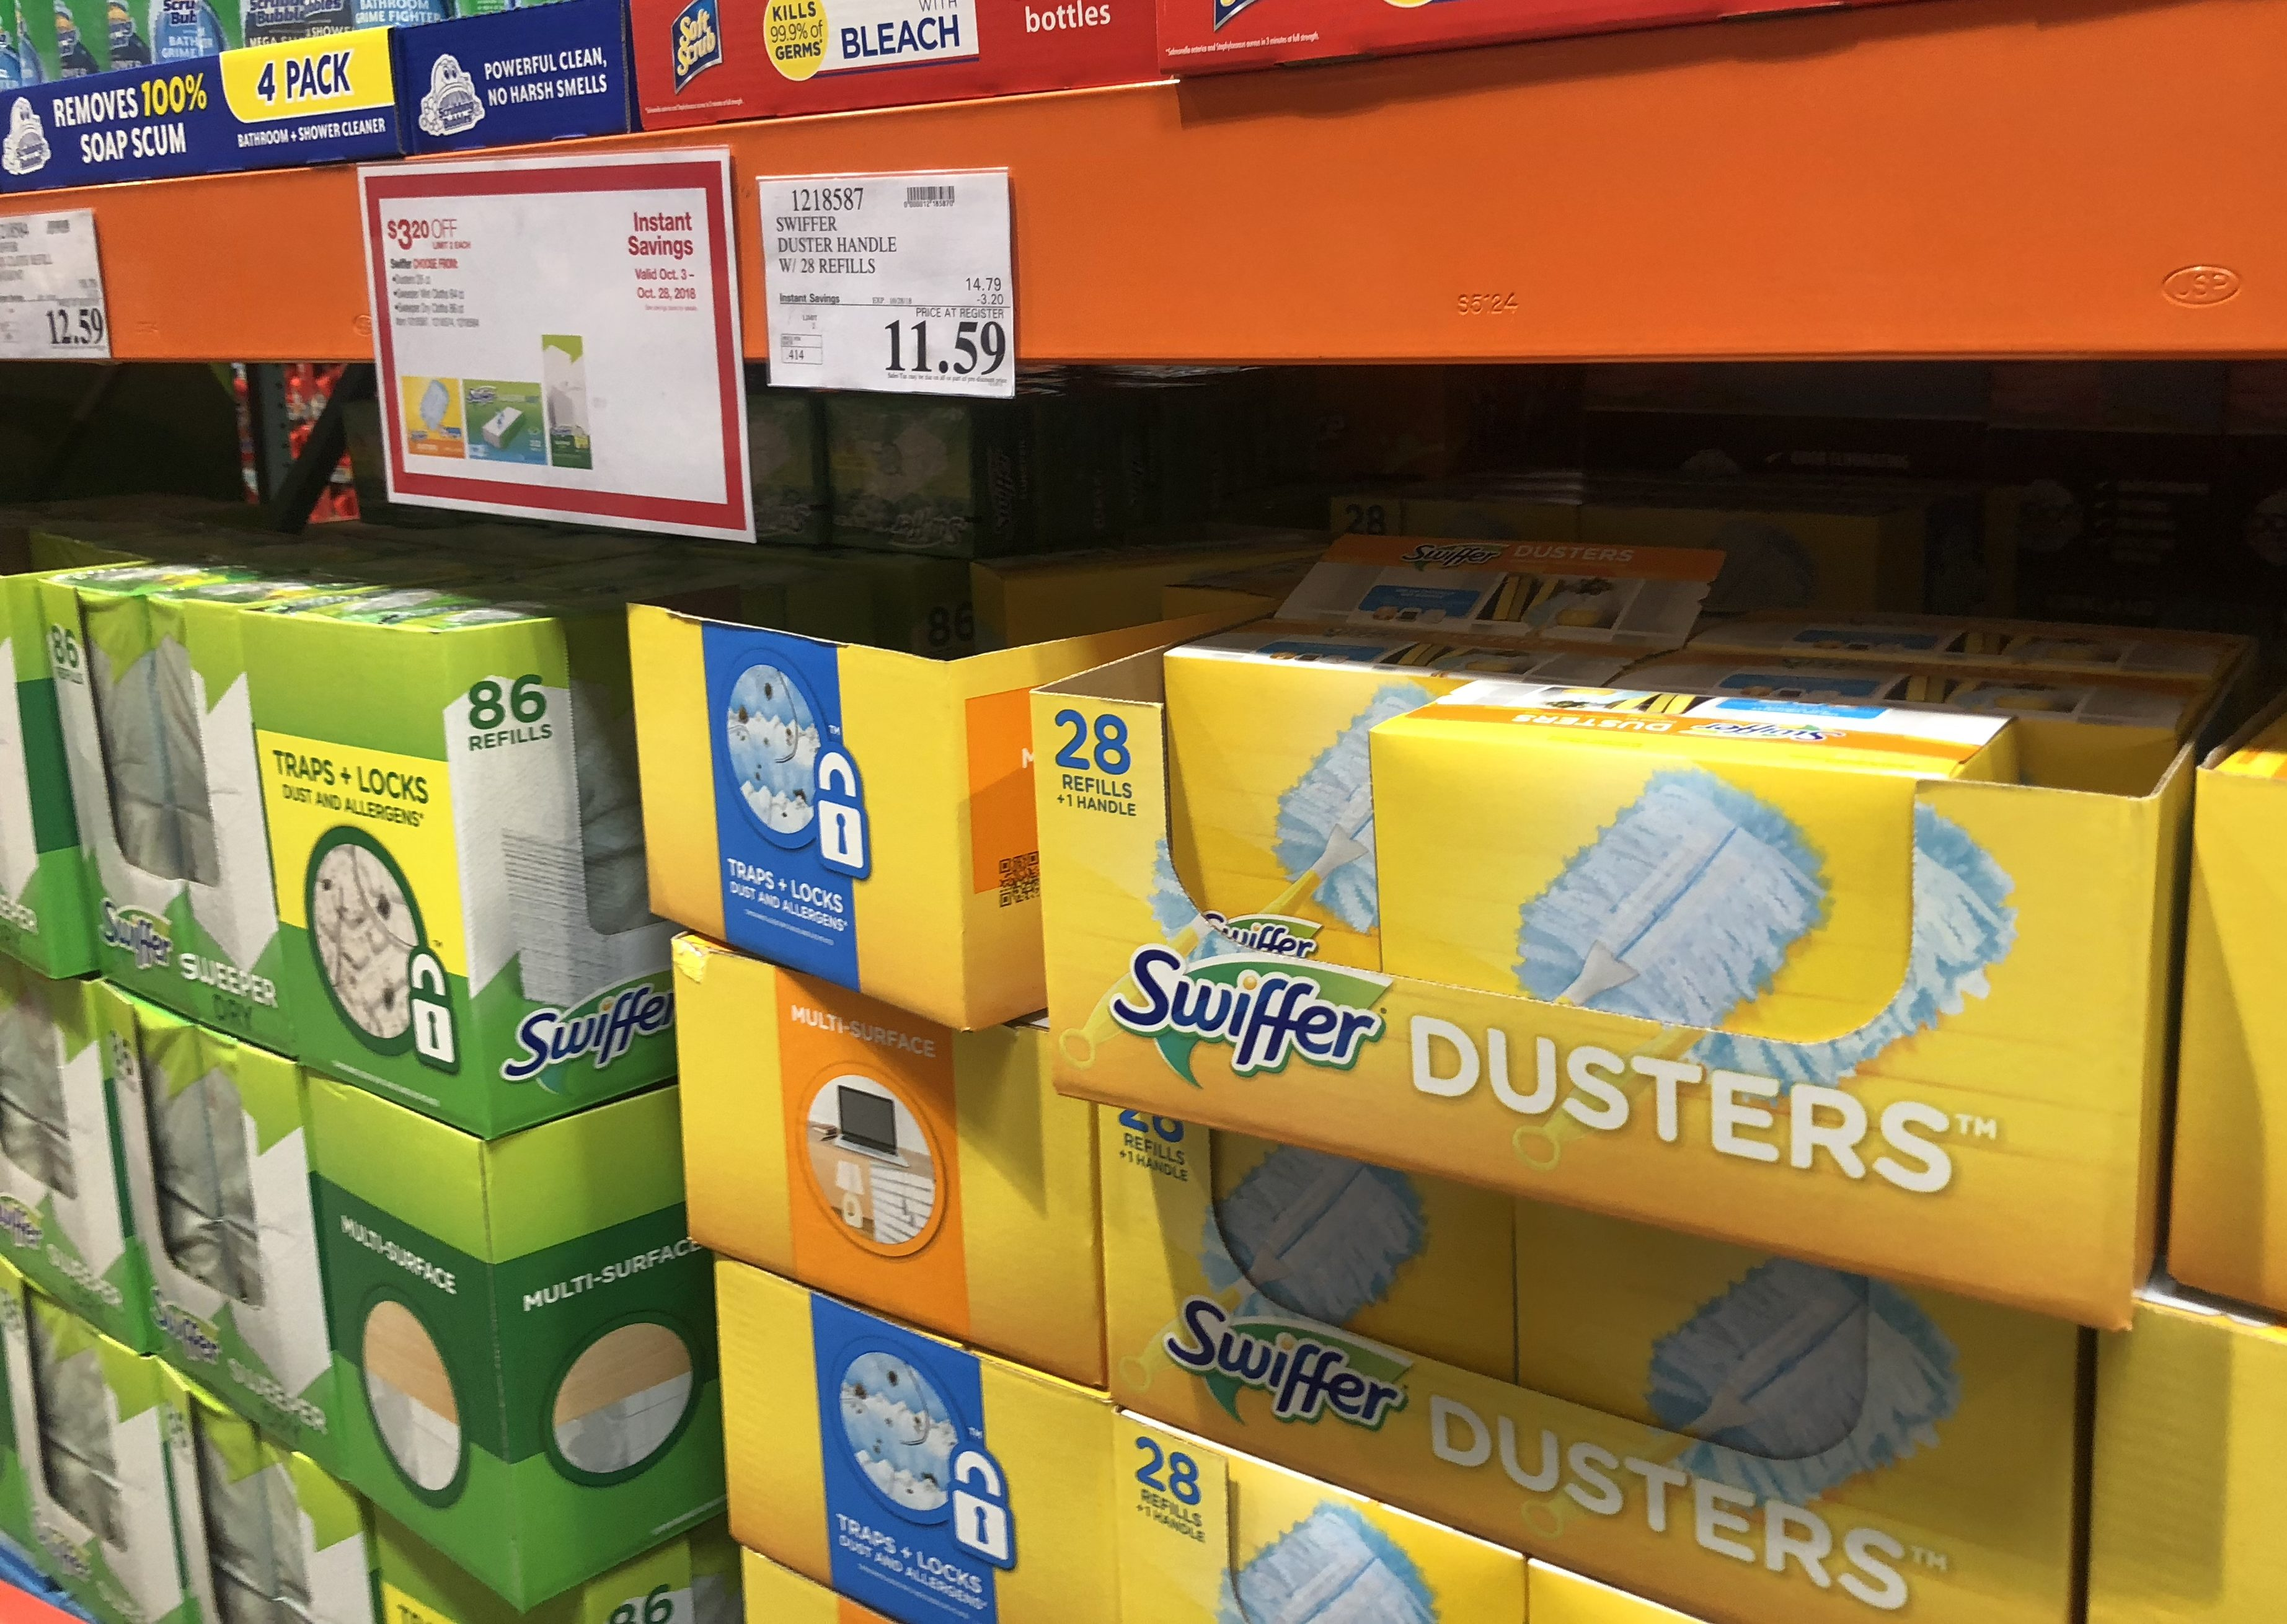 Costco deals October 2018 – Swiffer products at Costco